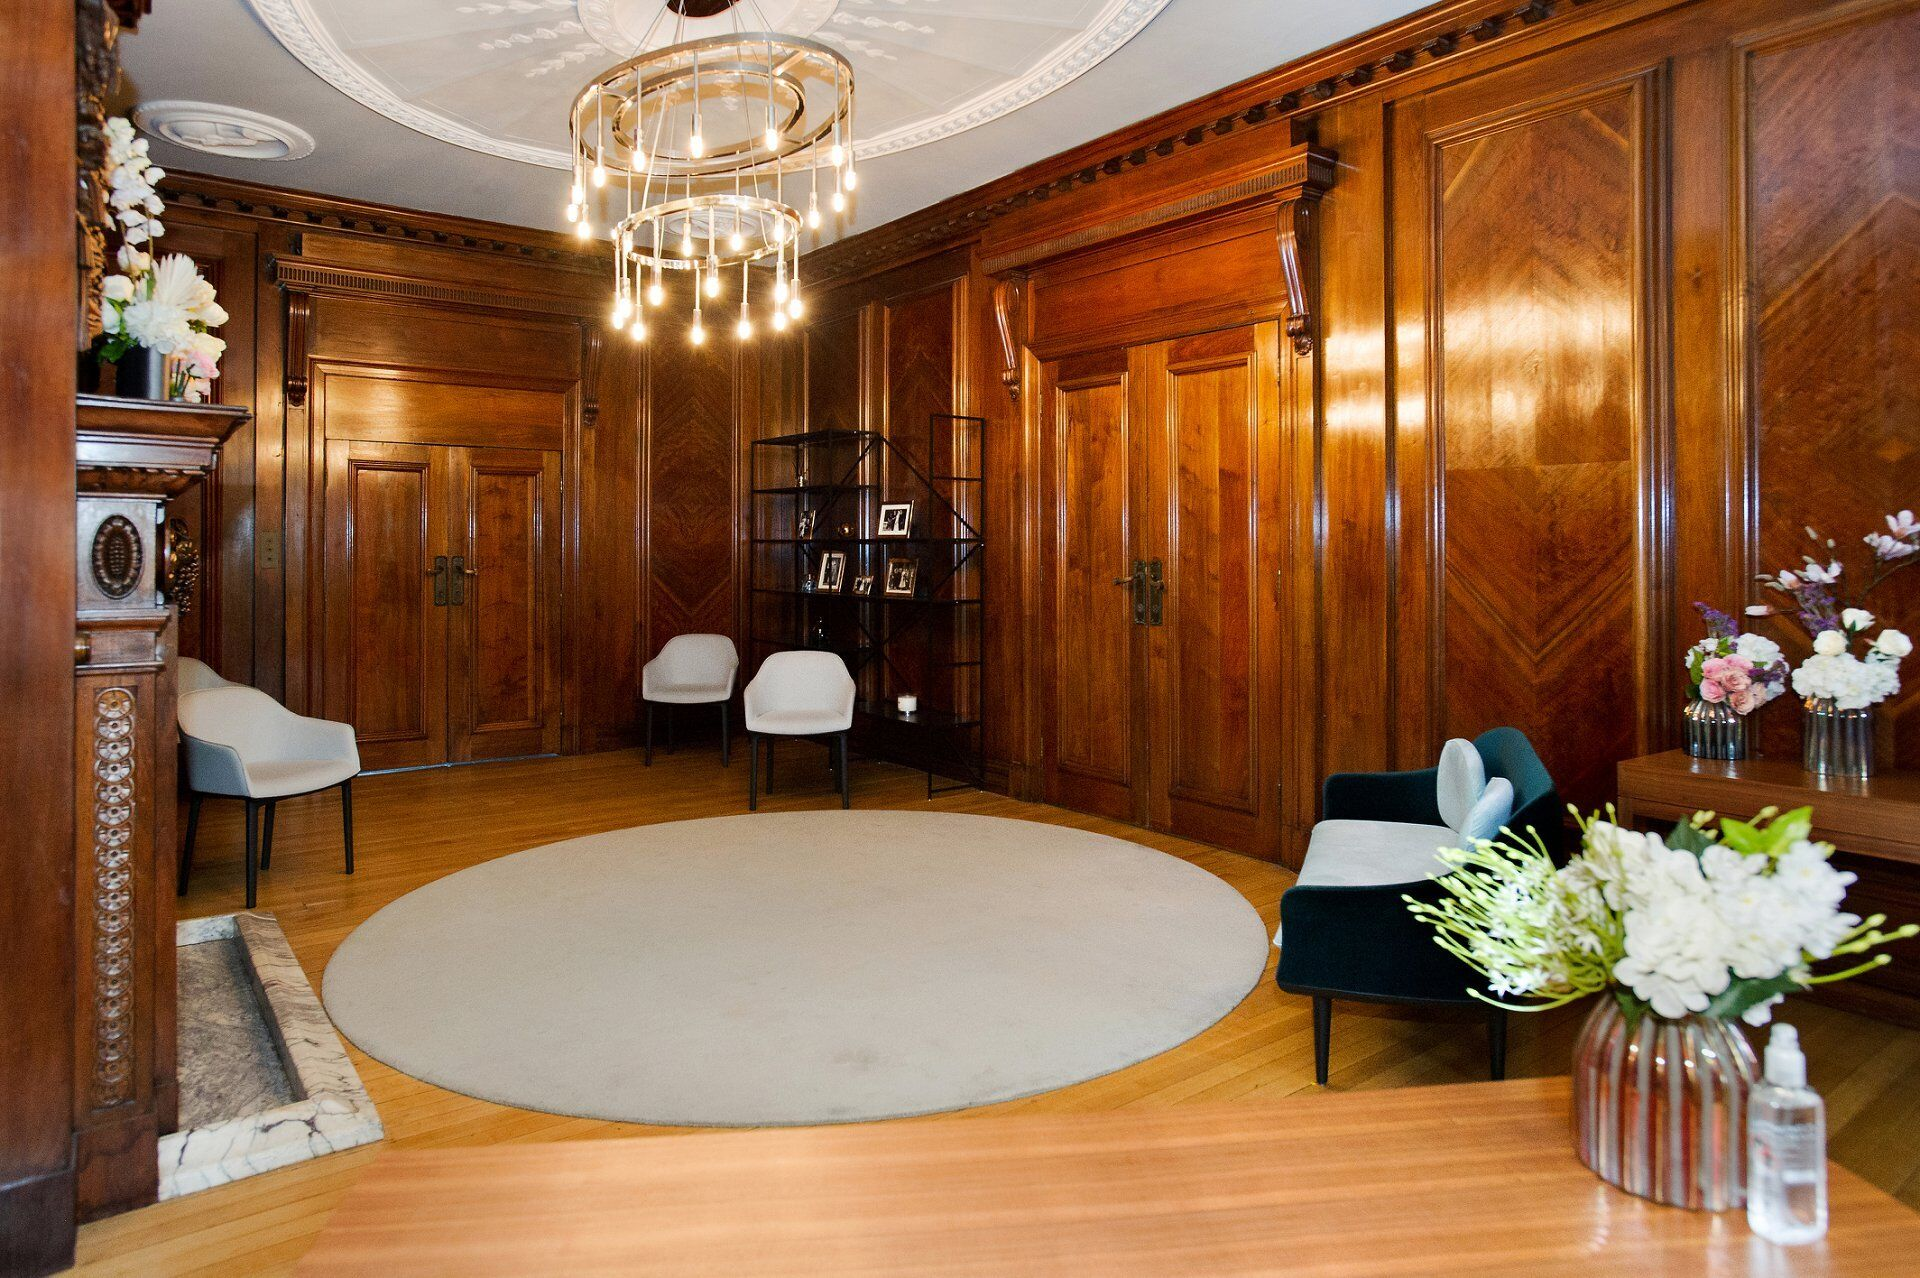 the marylebone room seen from the signing table showing seating for up to 6 guests and antibacterial gel on each table